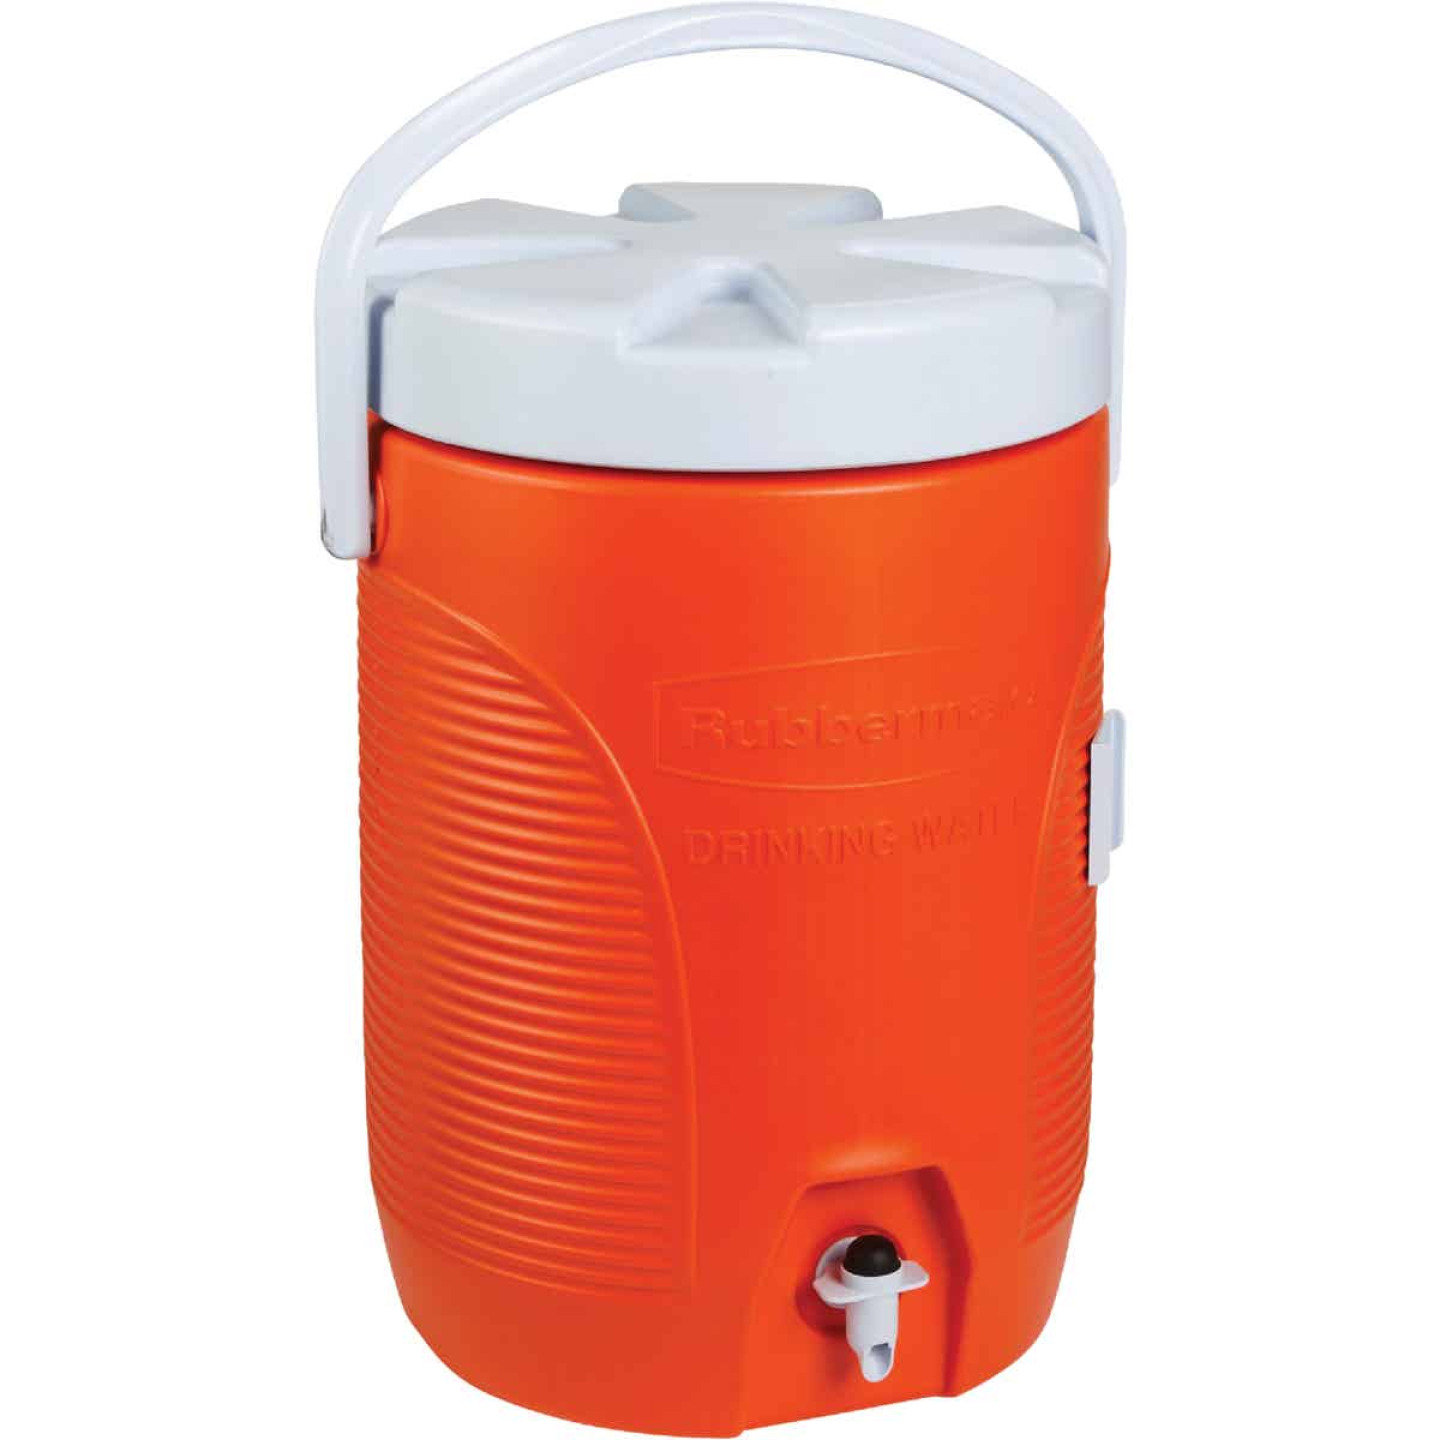 Rubbermaid 3 Gal. Orange Water Jug with Swing-Top Handle Image 1